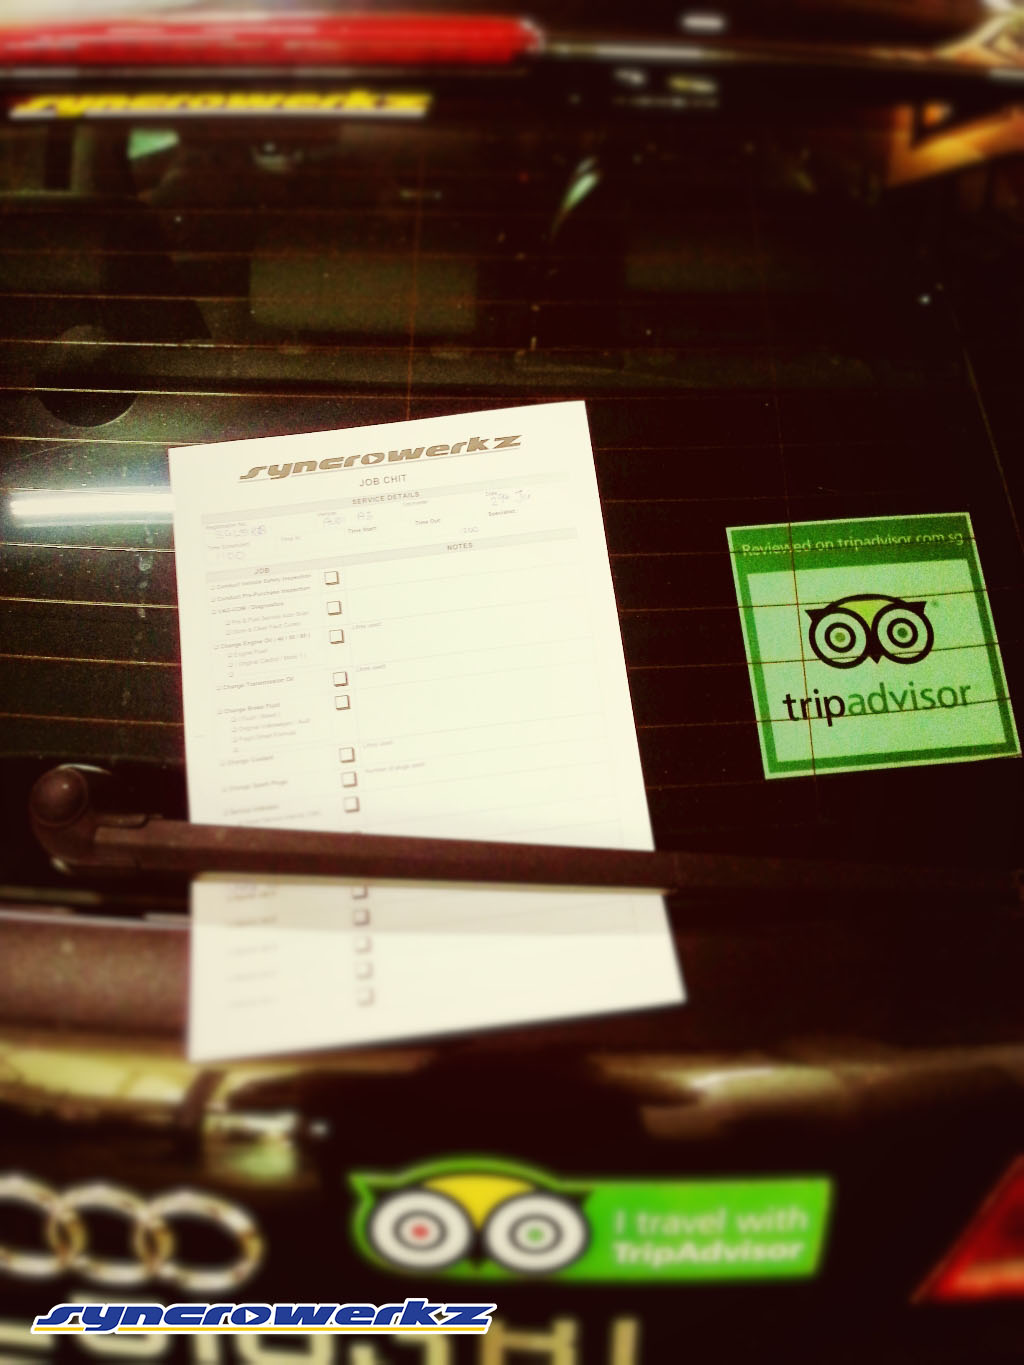 tripadvisor sticker with the Syncrowerkz job sheet